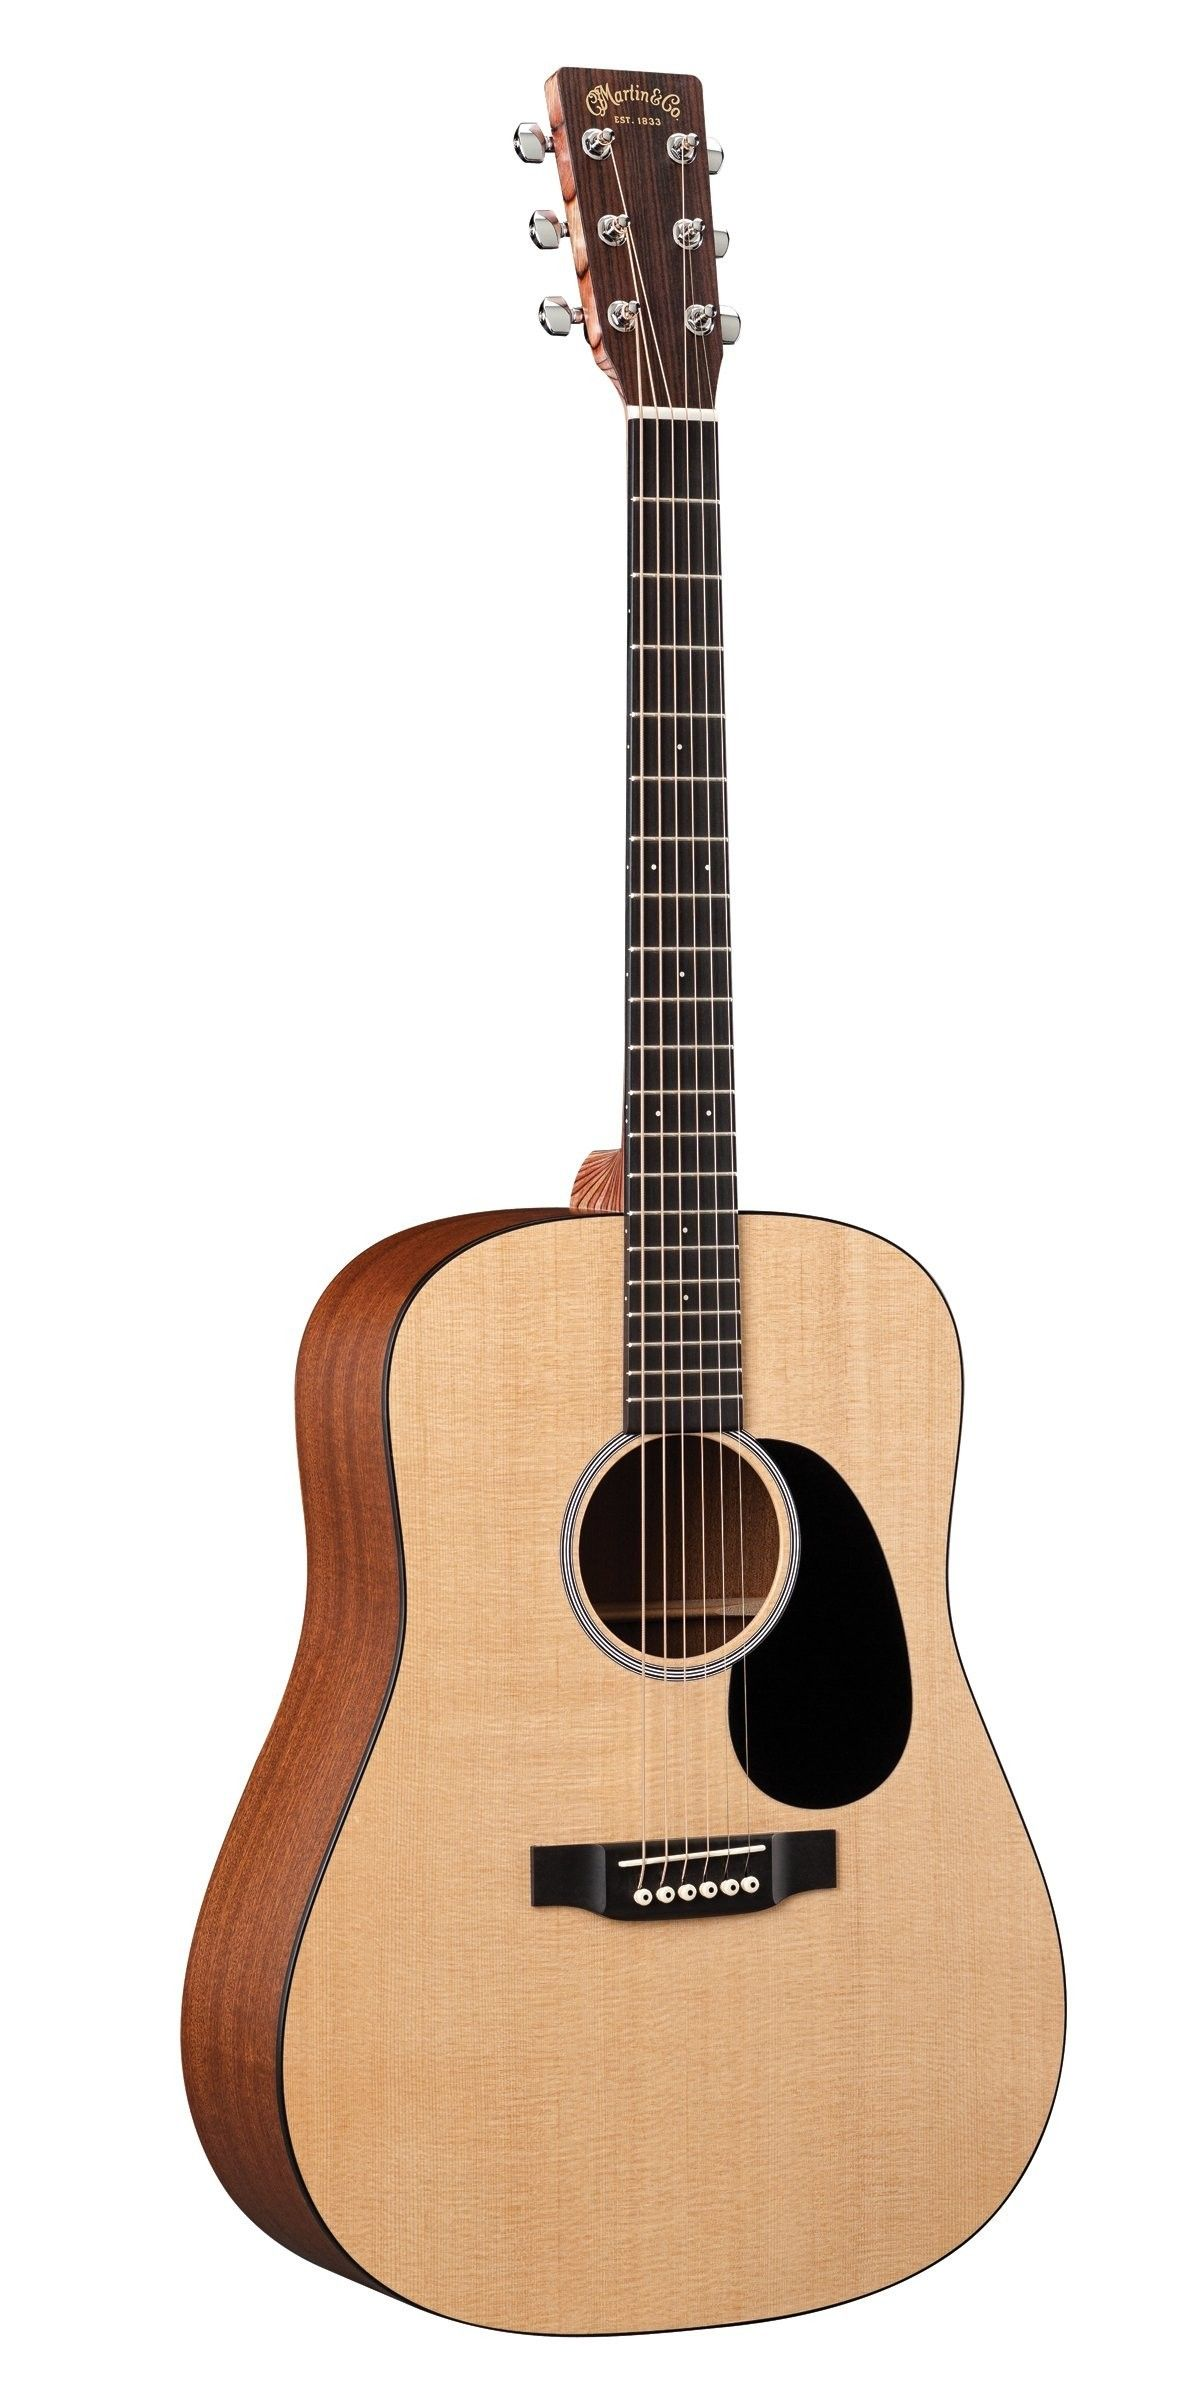 Martin Drs 2 Road Series Dreadnought Electro Acoustic Acoustic Guitar Martin Guitar Acoustic